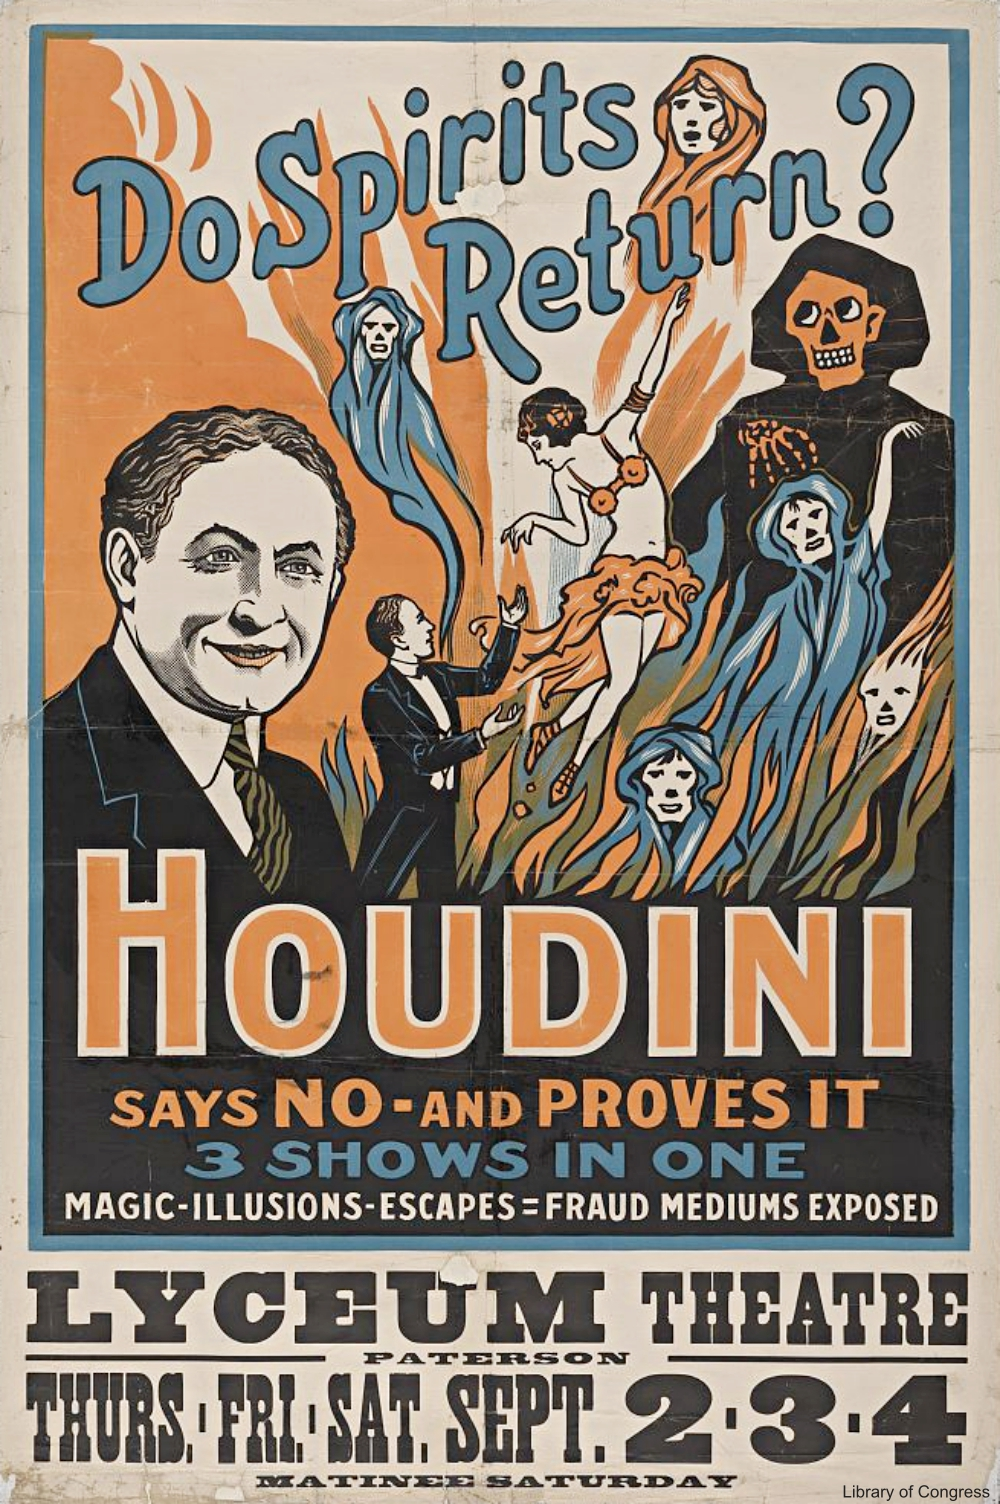 Houdini poster: Do spirits return? Houdini says no - and proves it 3 shows in one : magic, illusions, escapes, fraud mediums exposed.